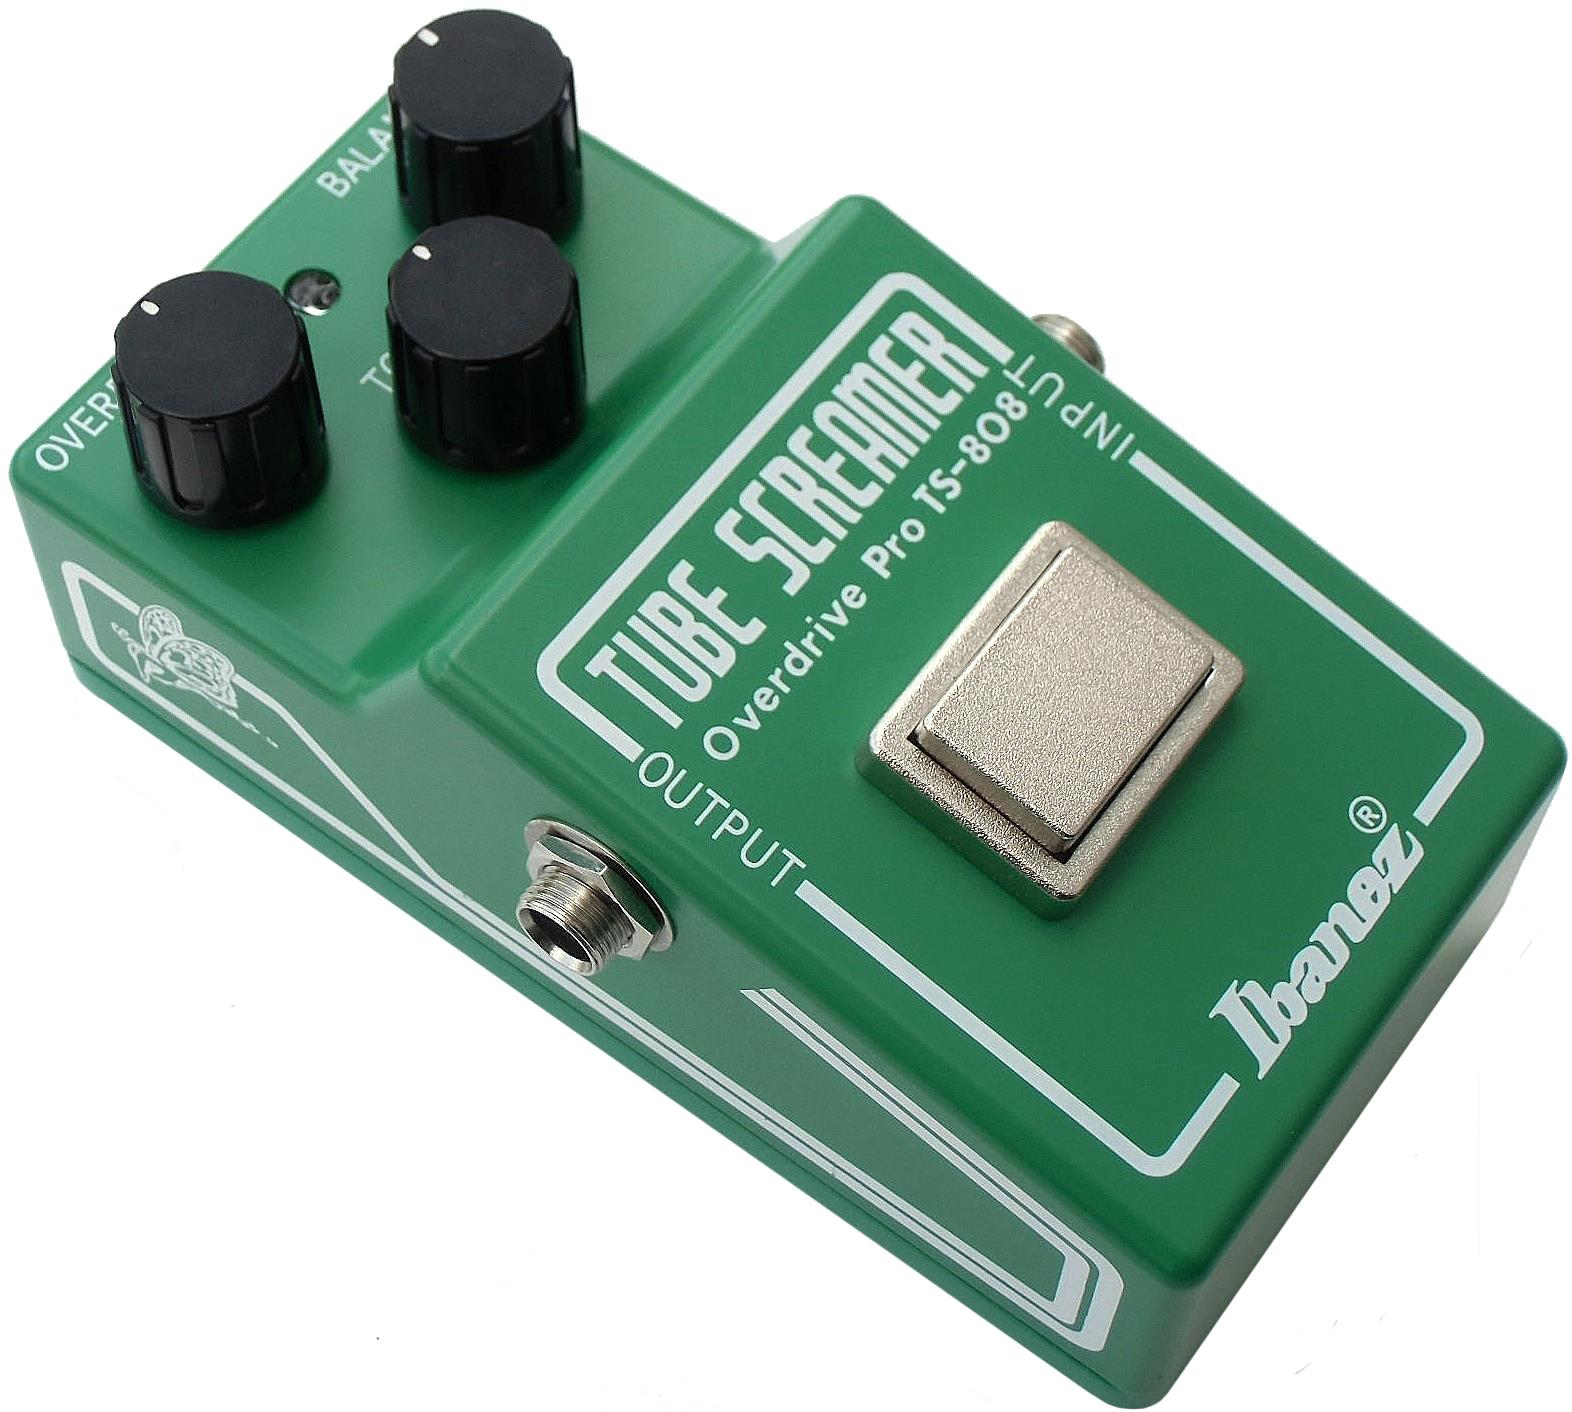 Ibanez Ts808 Tube Screamer 35th Anniversary Limited Model